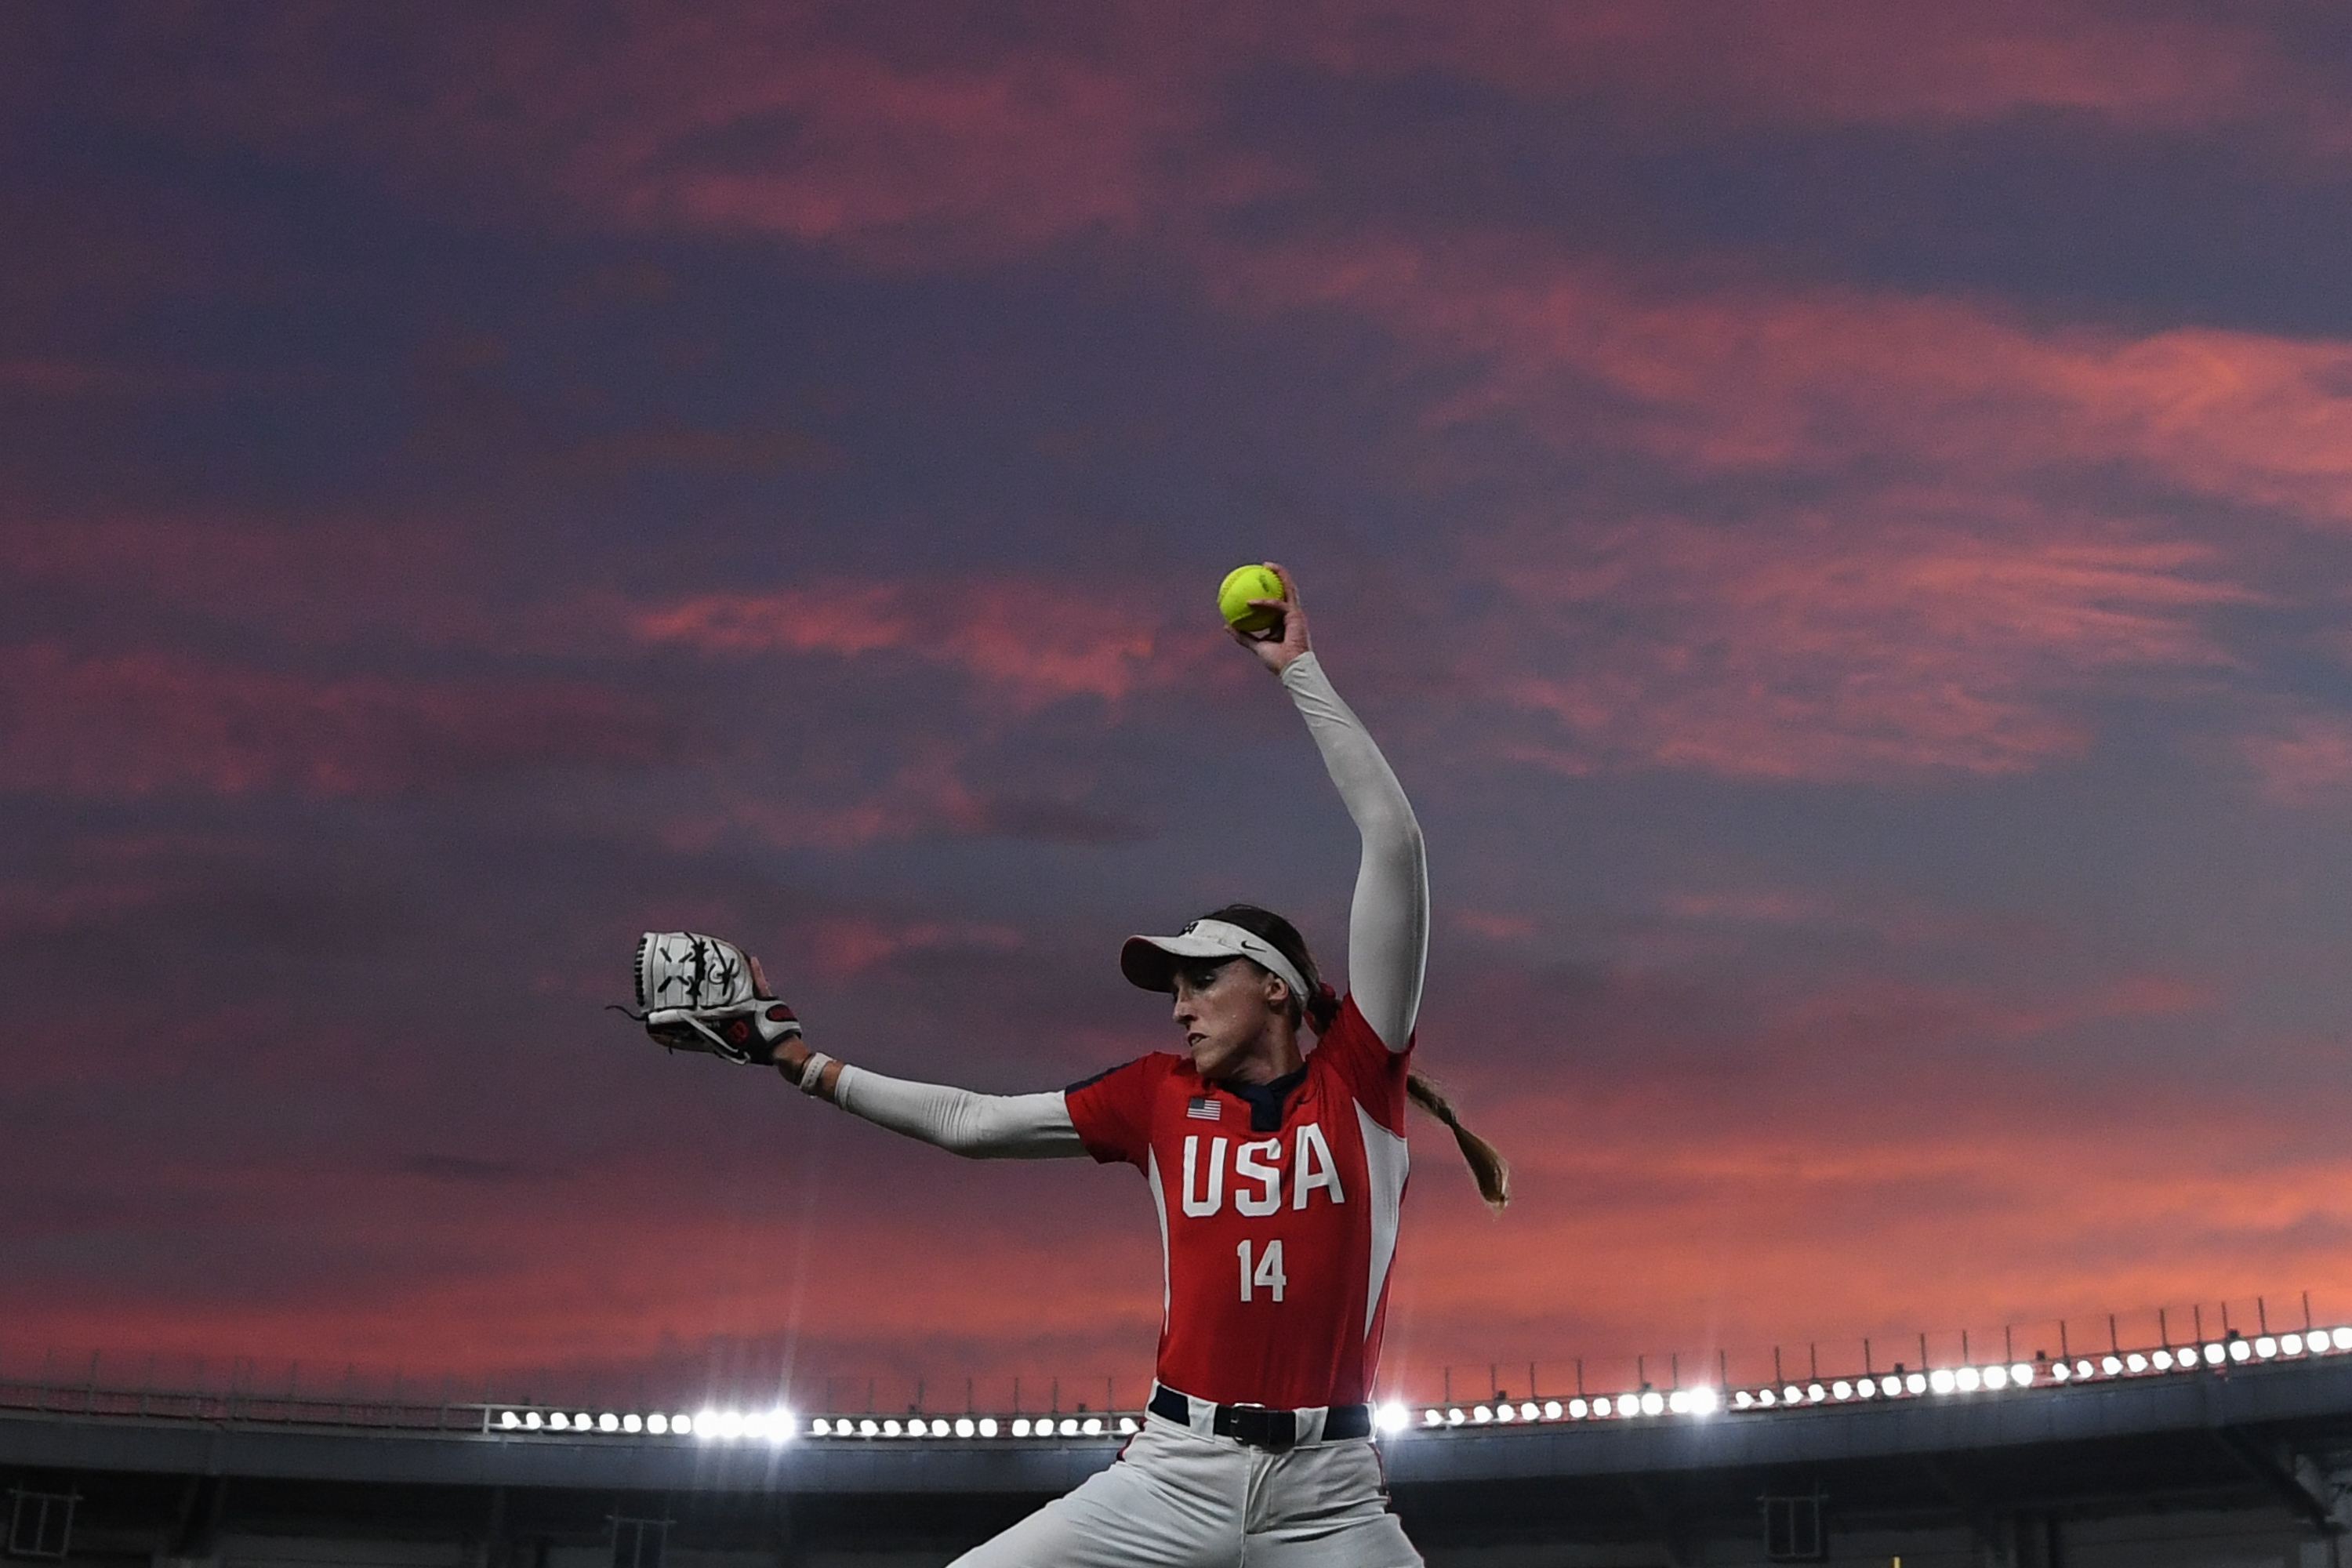 Monica Cecilia Abbott #14 of the USA warms up prior to a match between Japan and United States at the WBSC Women's Softball World Championship, 11 August 2018, in Chiba, Japan.